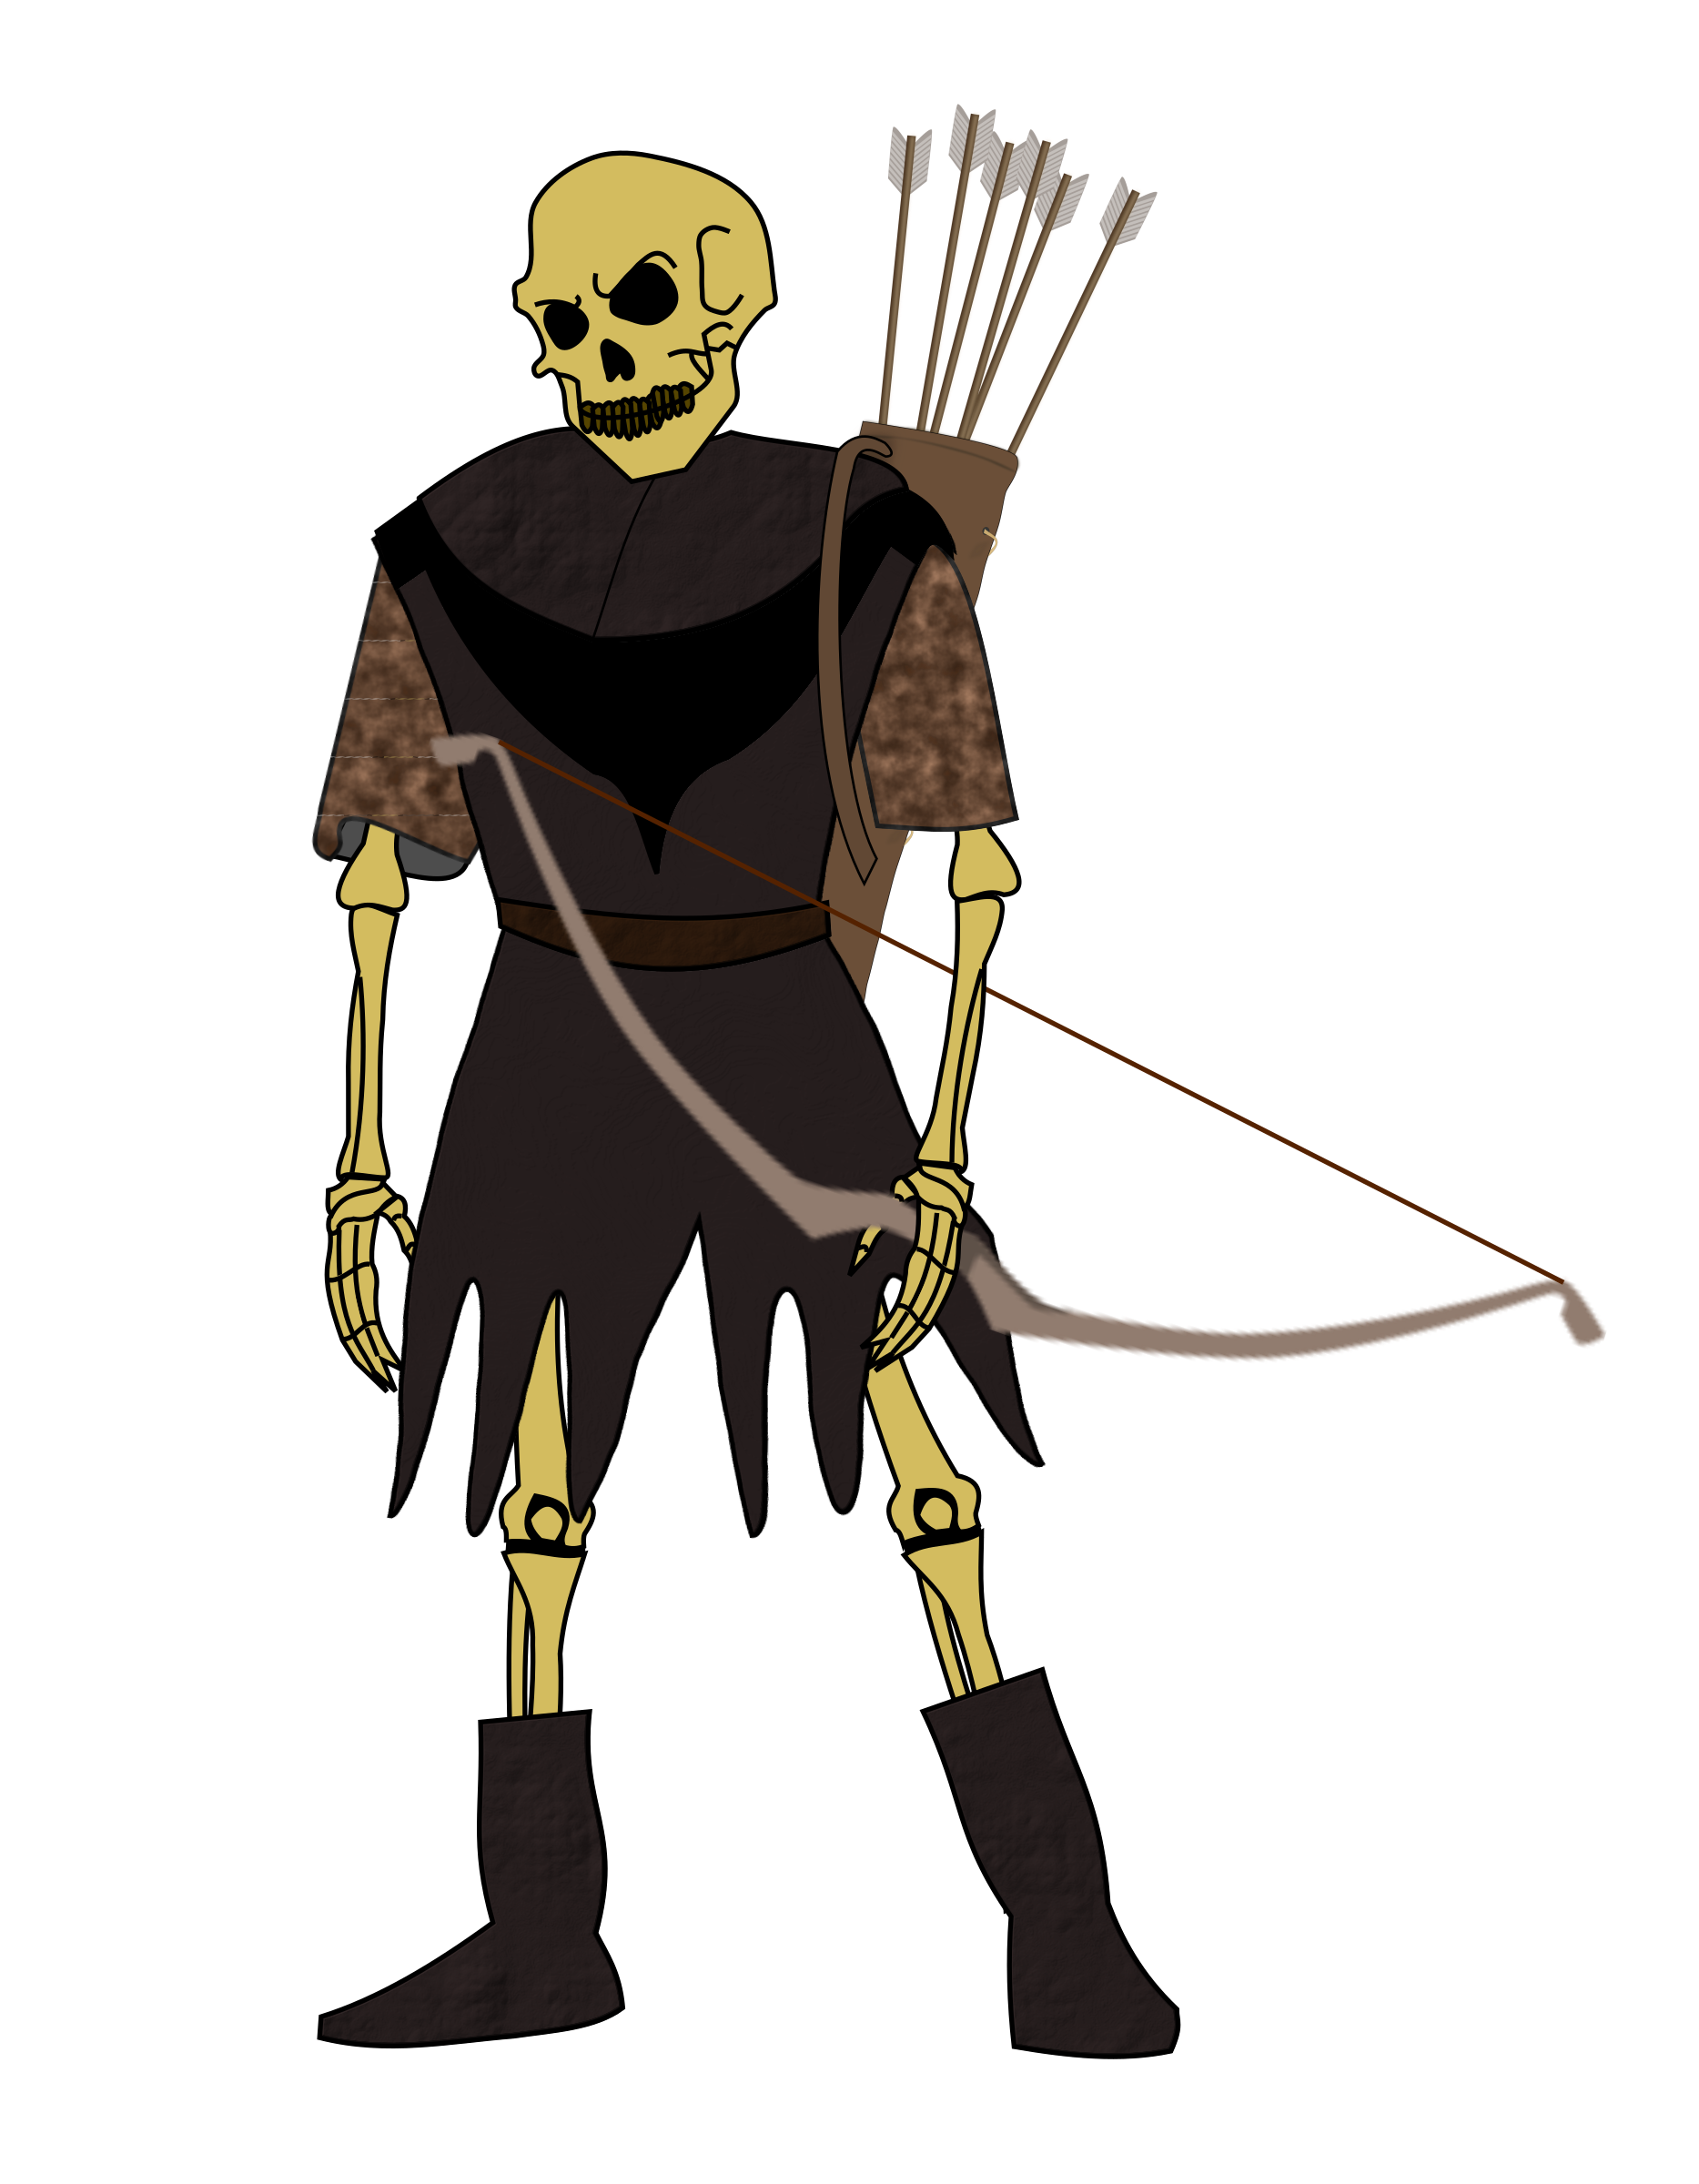 Undead Archer by Flying Dutchman